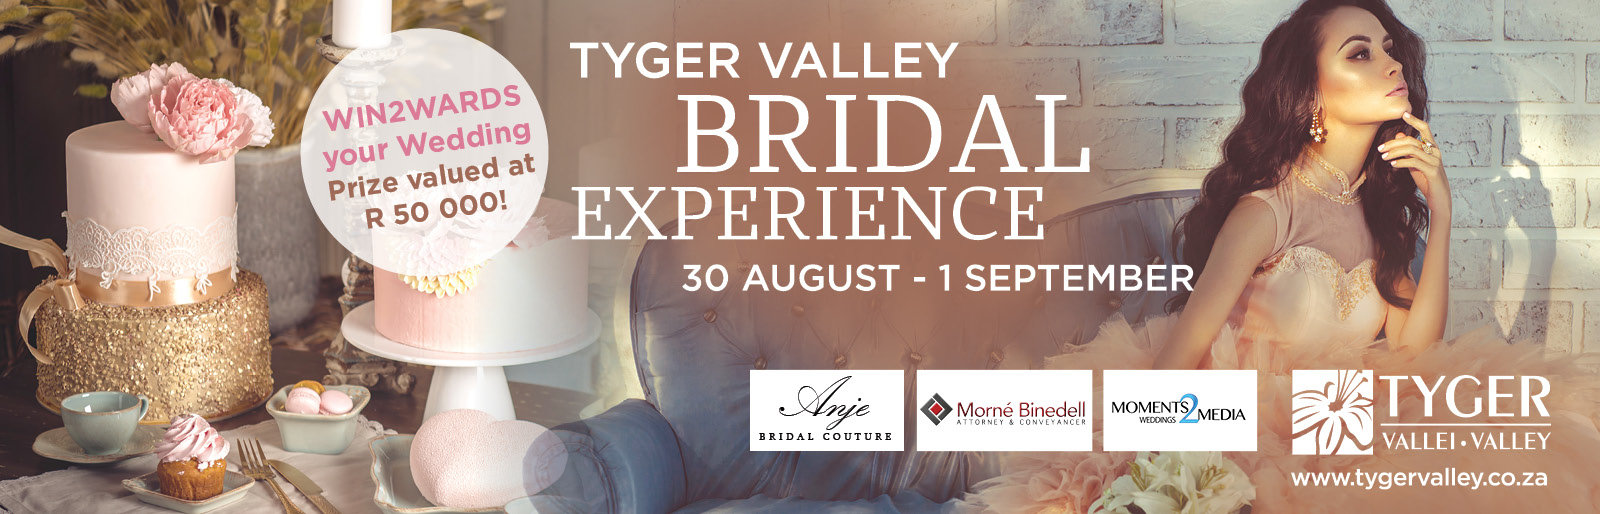 Tyger Valley Bridal Experience